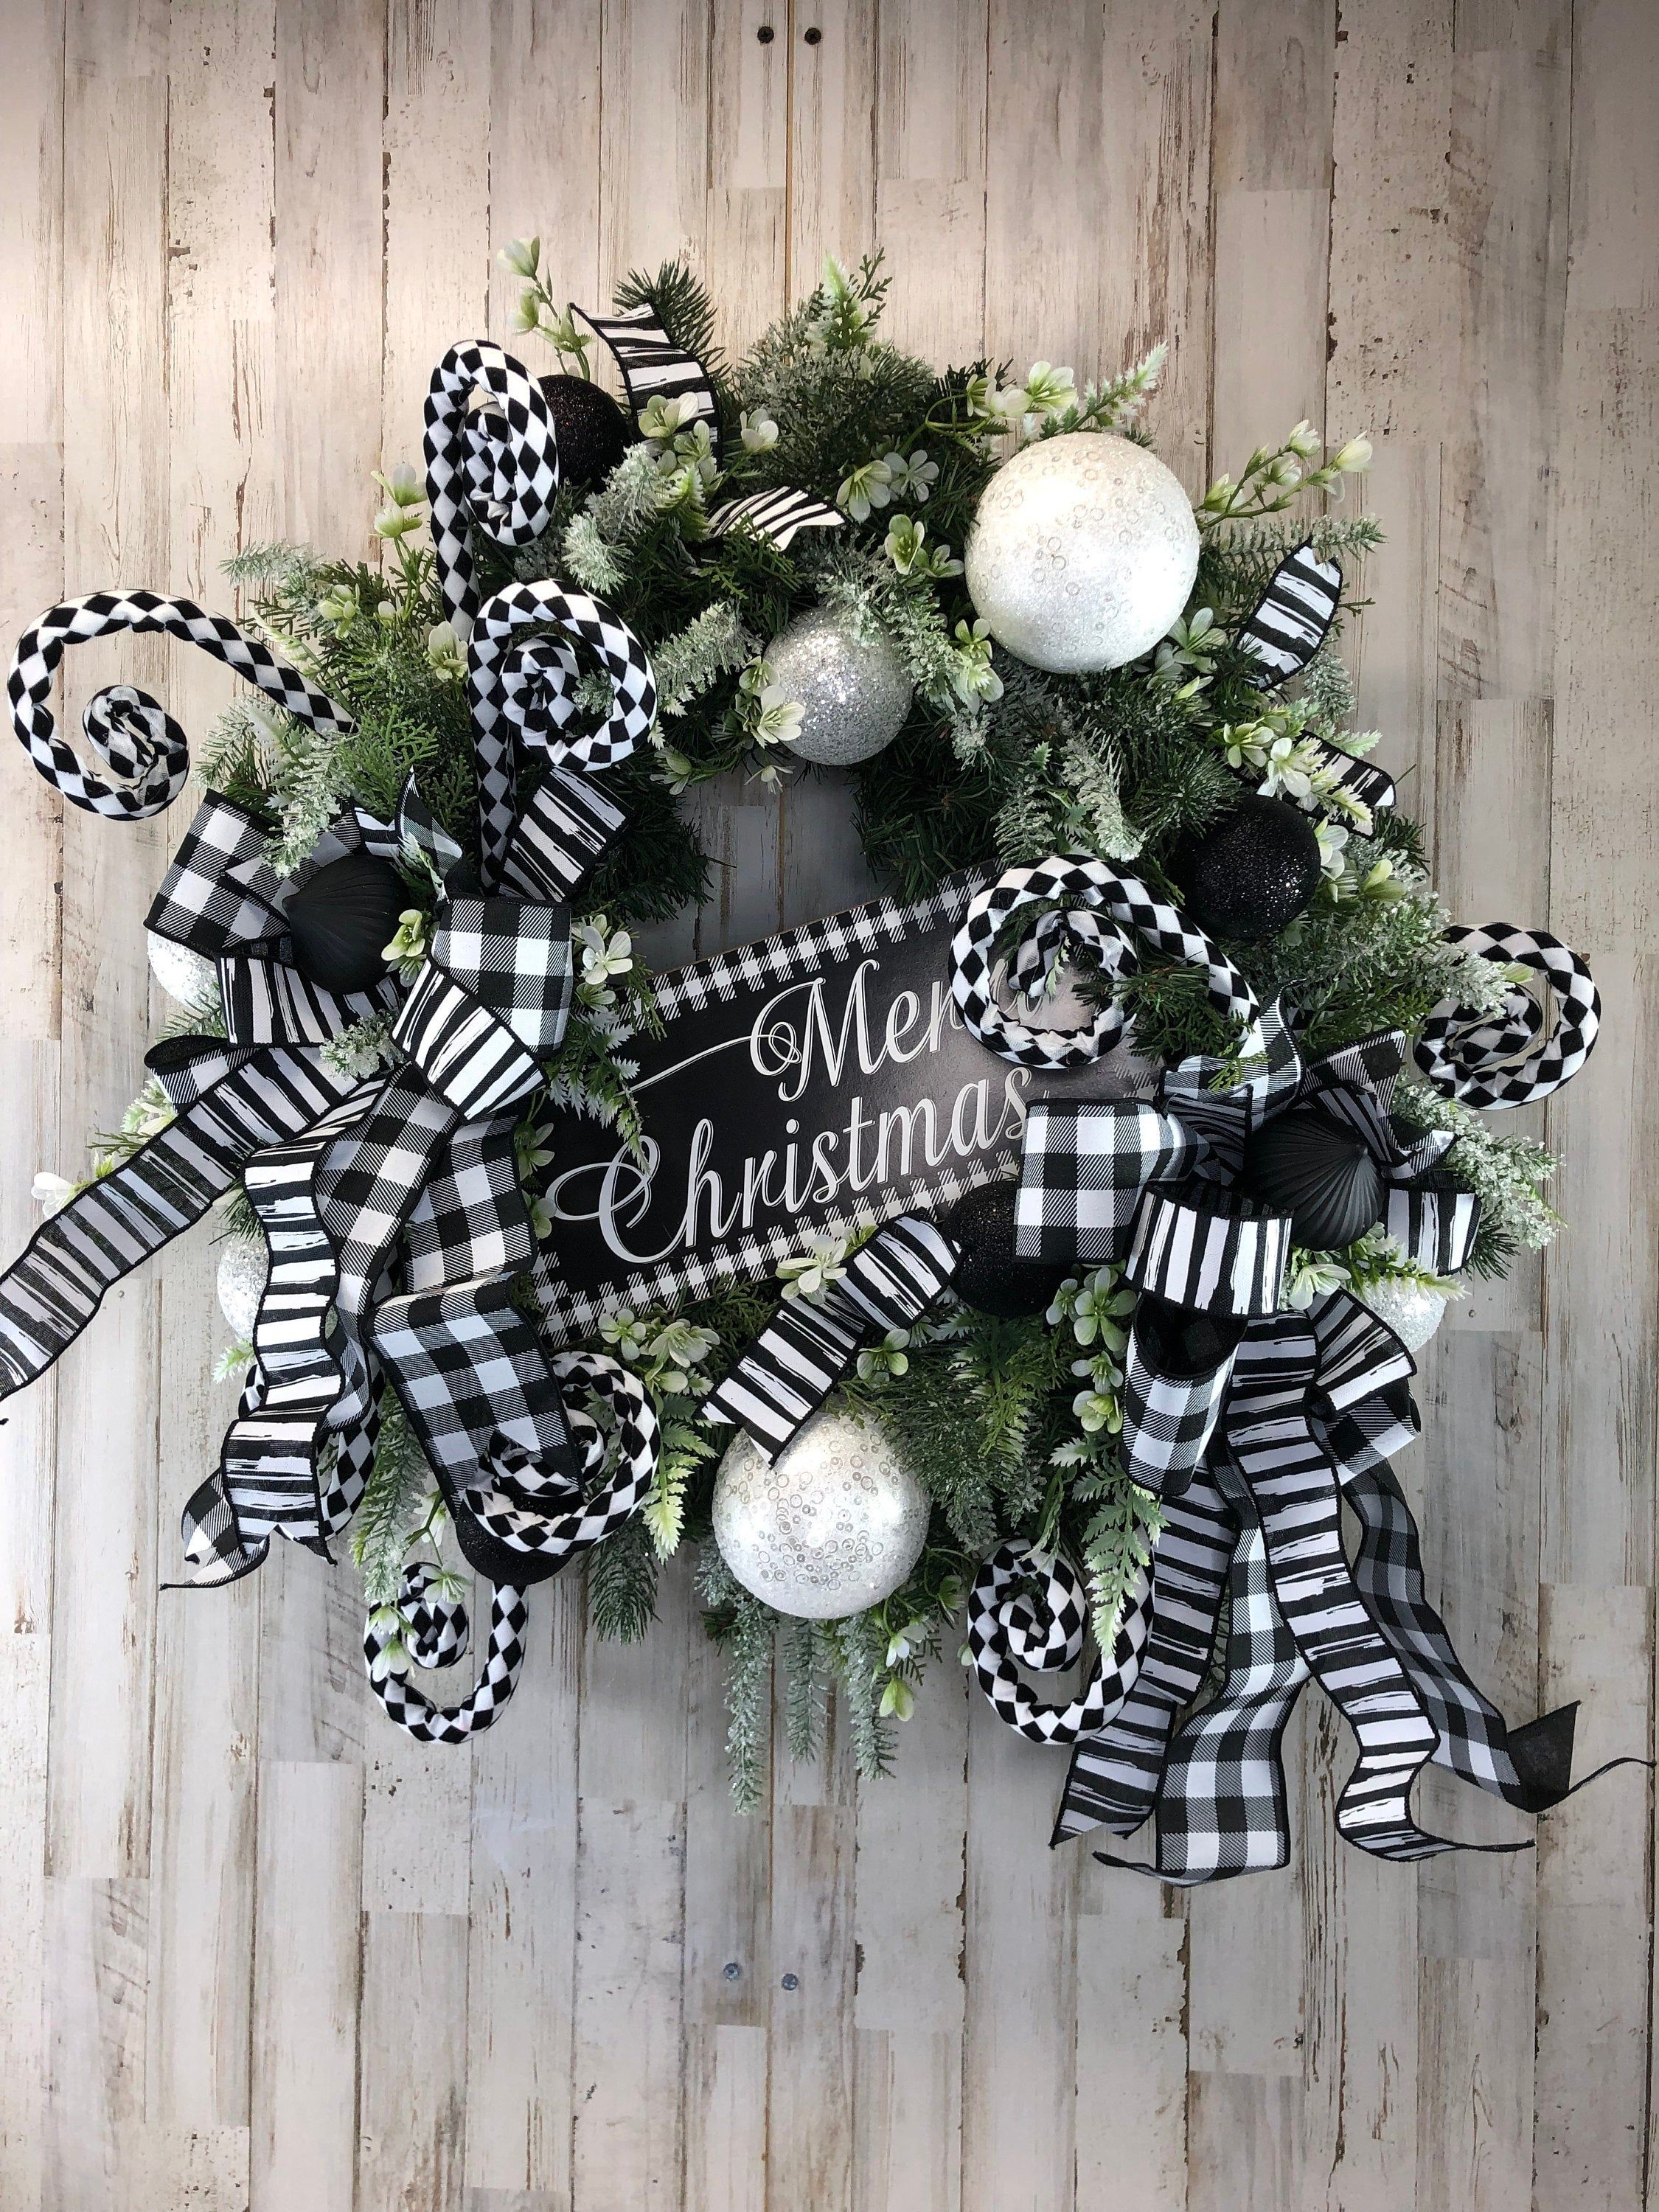 Black And White Christmas Wreath Merry Christmas Wreath For Front Door Farmhouse Christmas Wreath Whimsical Christmas Decor White Christmas Wreath Christmas Wreaths Whimsical Christmas Decor